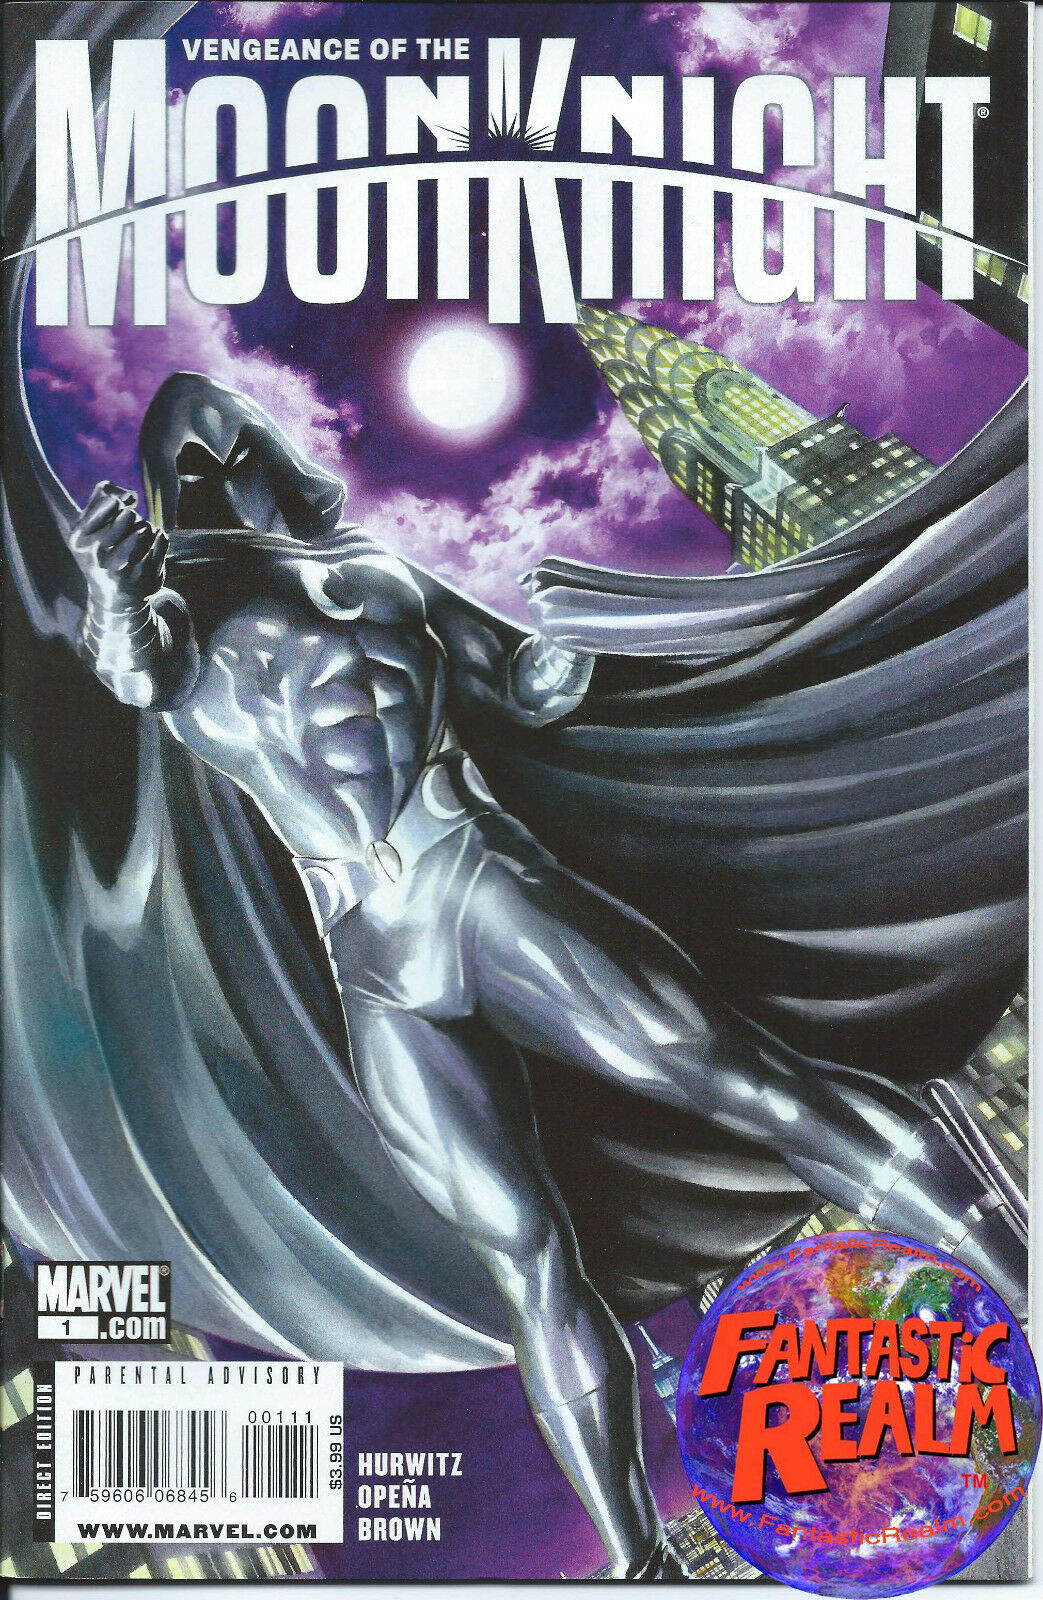 VENGEANCE OF MOON KNIGHT ISSUE #1 ALEX ROSS VARIANT 1ST PRINT MARVEL COMICS